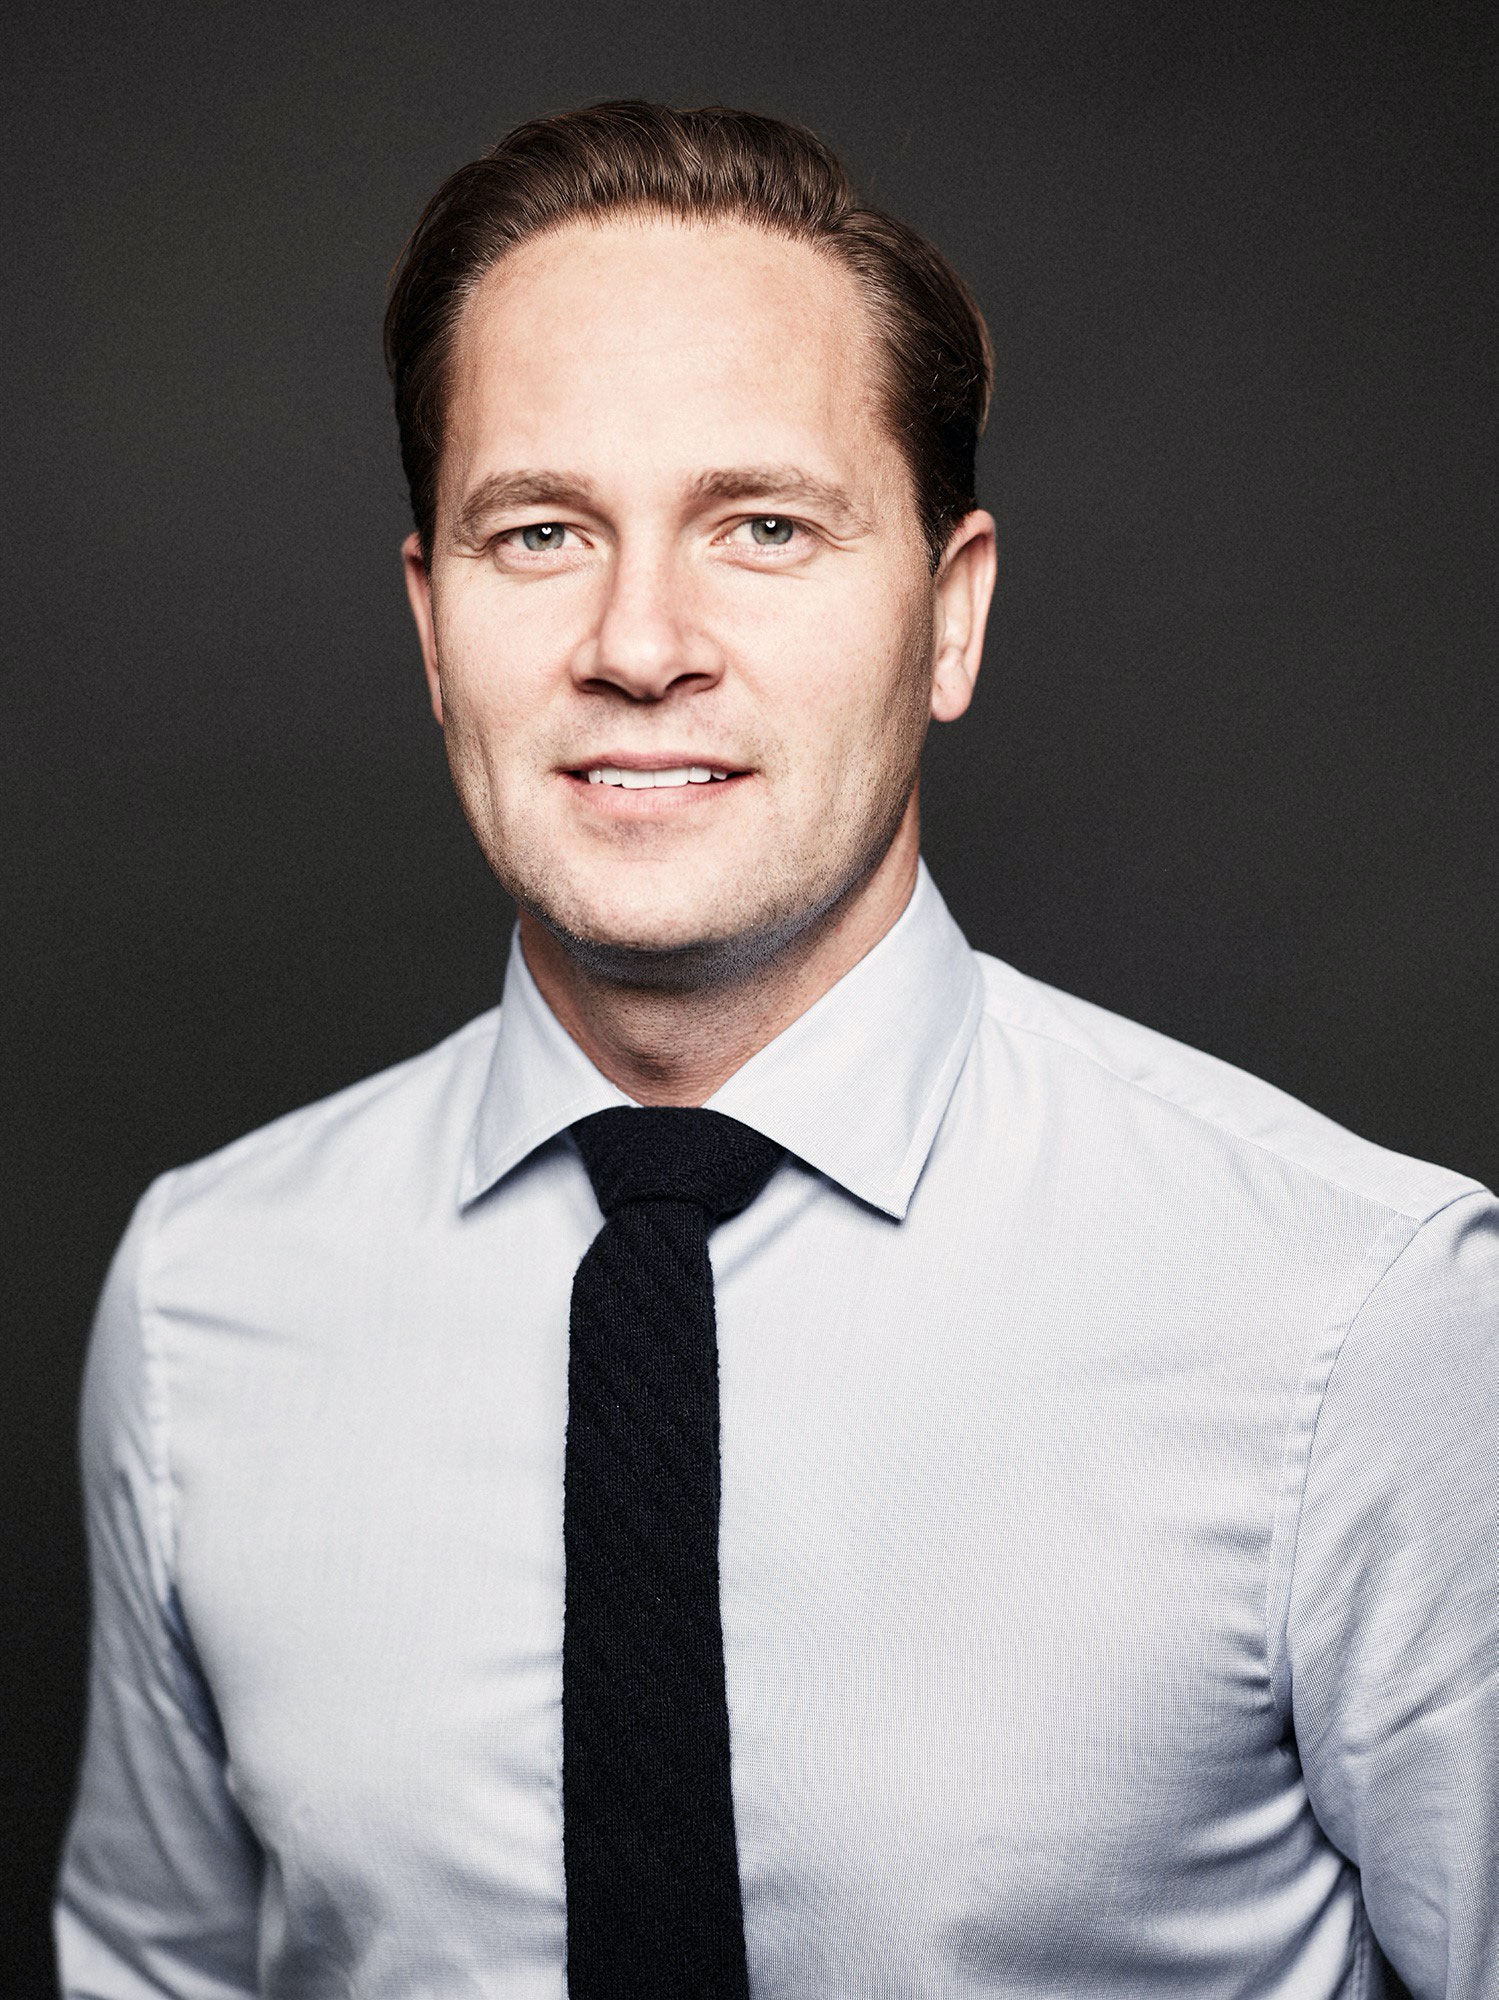 Image of Anders Jensen, Chief Executive Officer